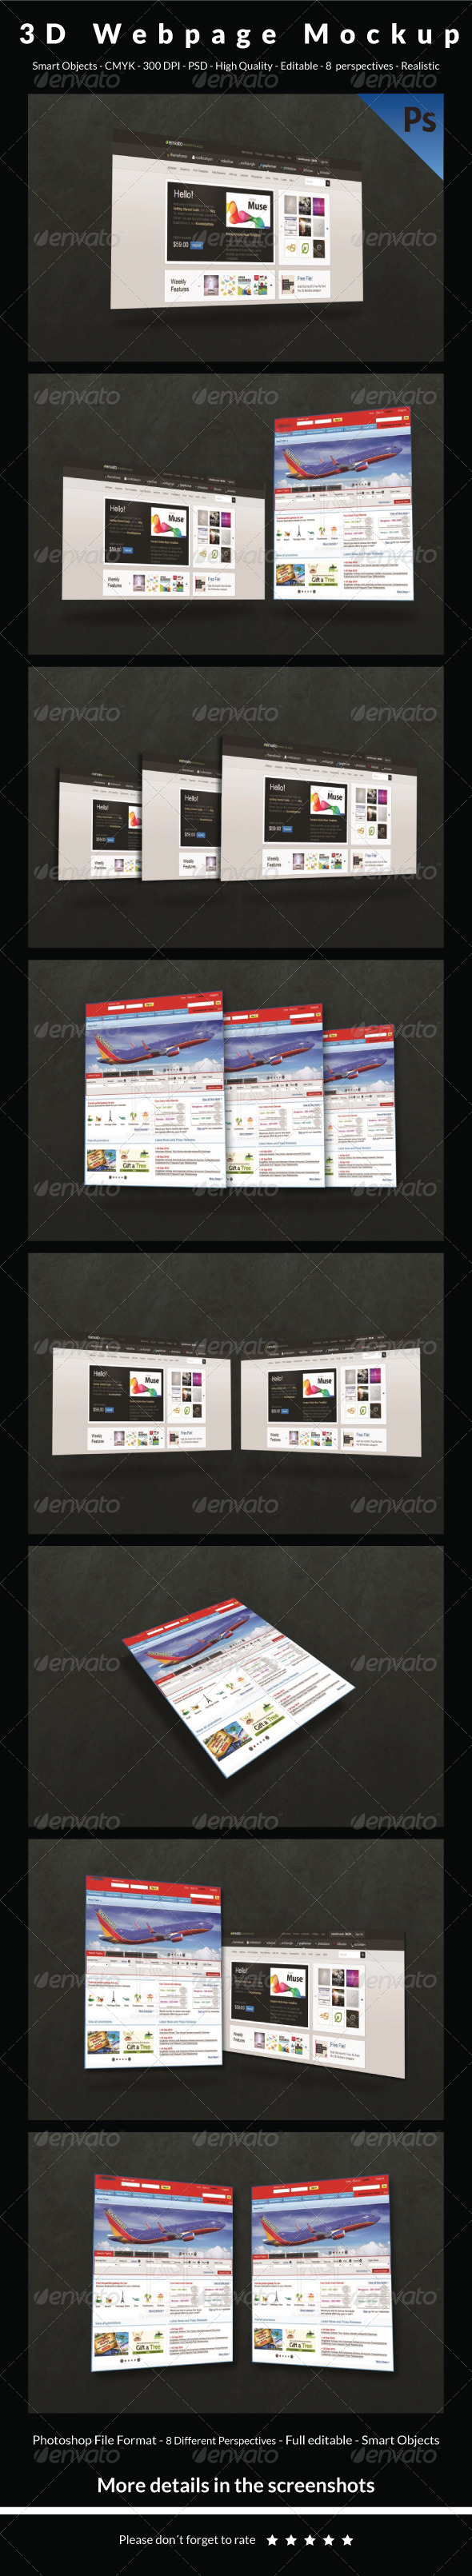 3D Webpage Mockup - Website Displays